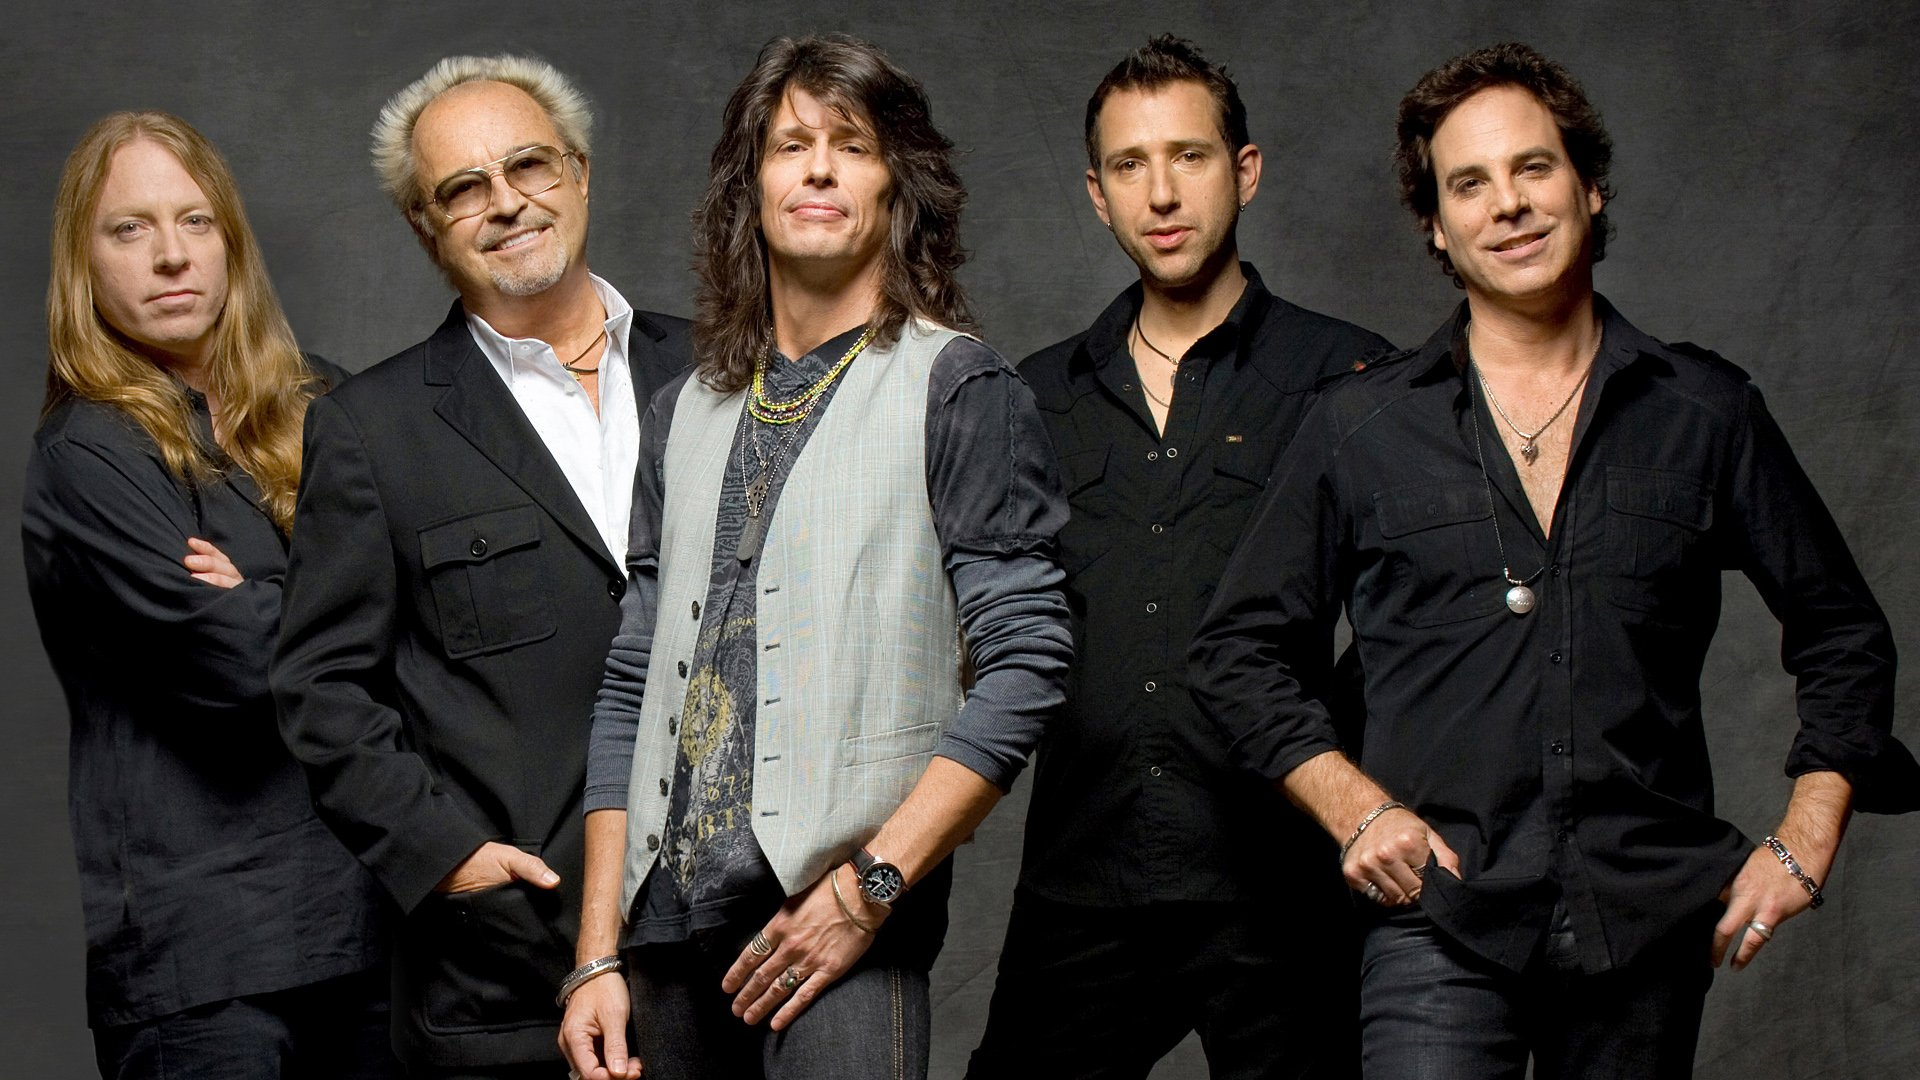 Foreigner HD Wallpaper Background Image 1920x1080 ID799813 1920x1080